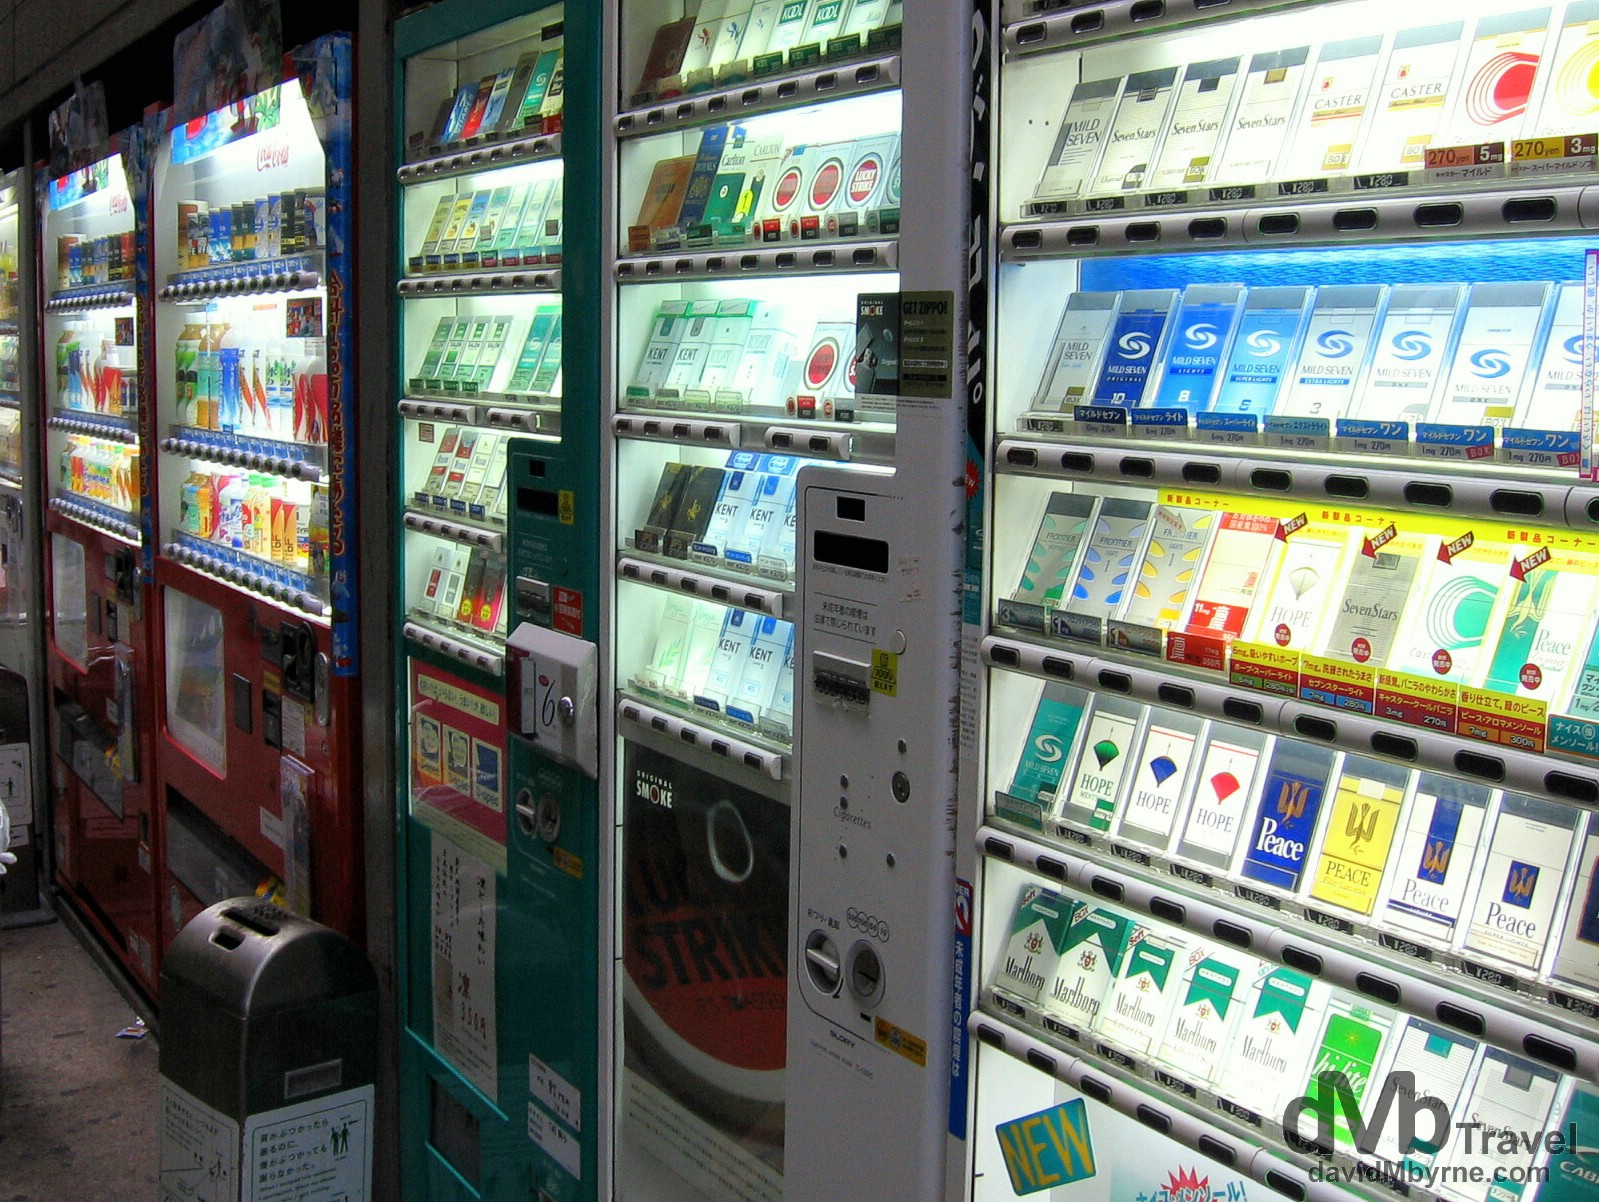 Vending machines in Kyoto, Honshu, Japan. July 18th, 2005.